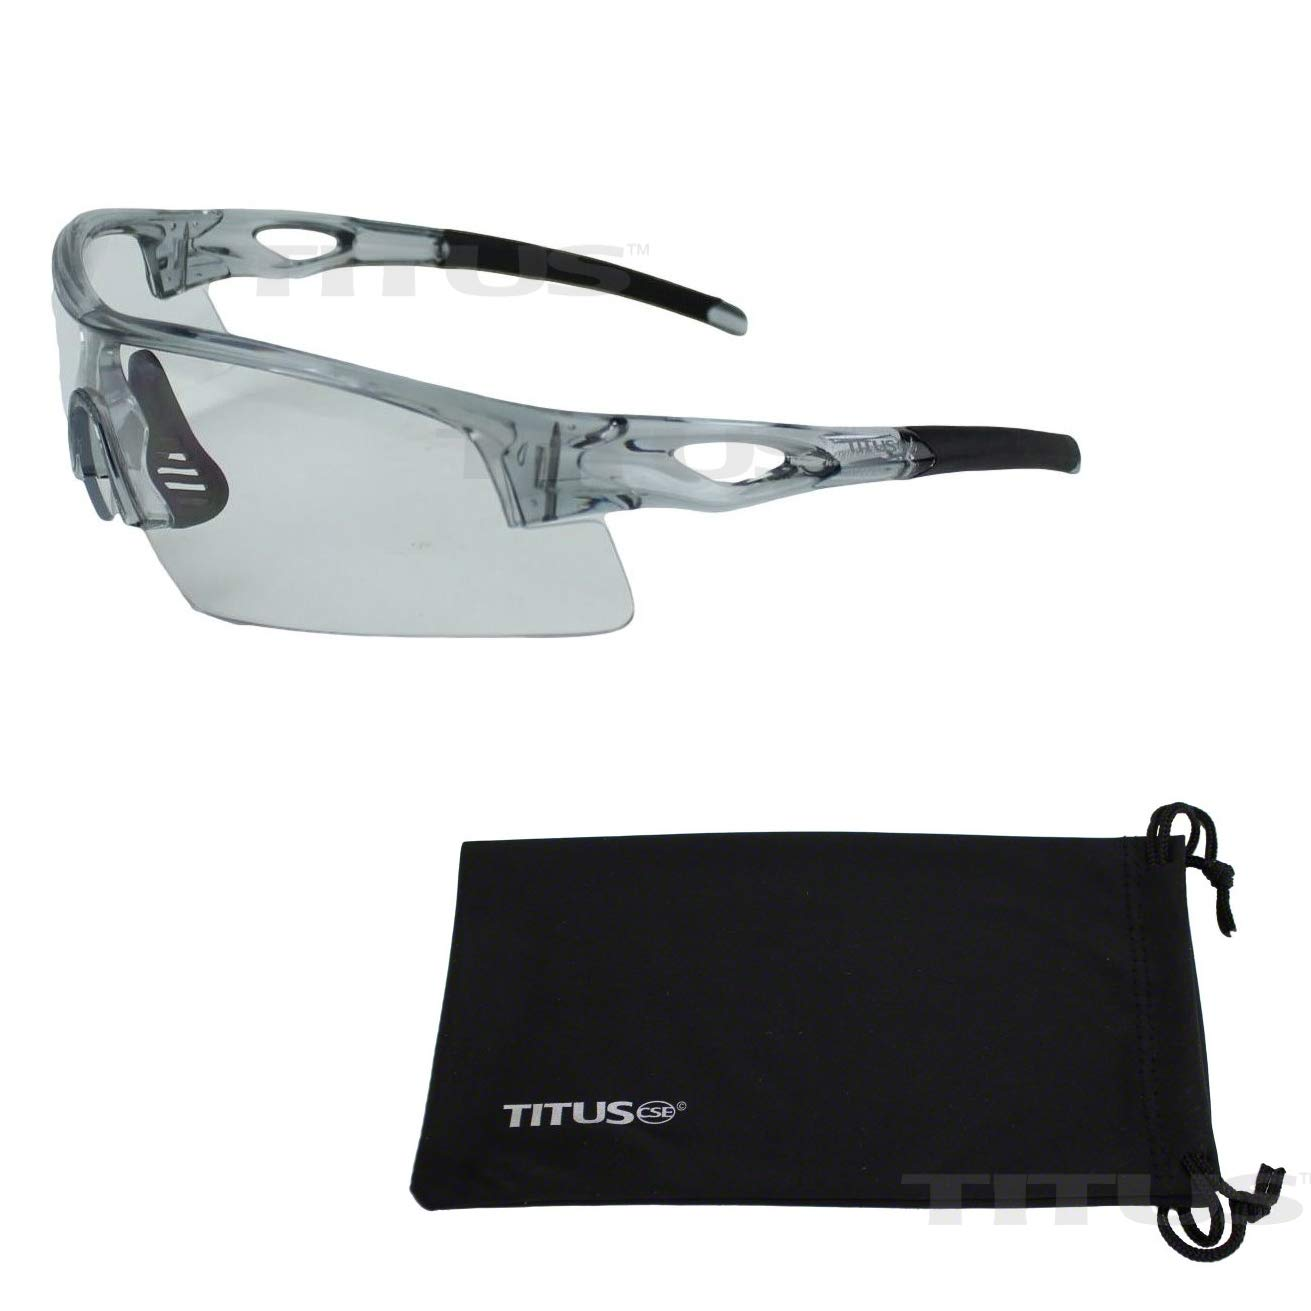 Titus All-Sports Frame Safety Glasses (with Pouch, Grey Frame - Clear Lens) by Titus